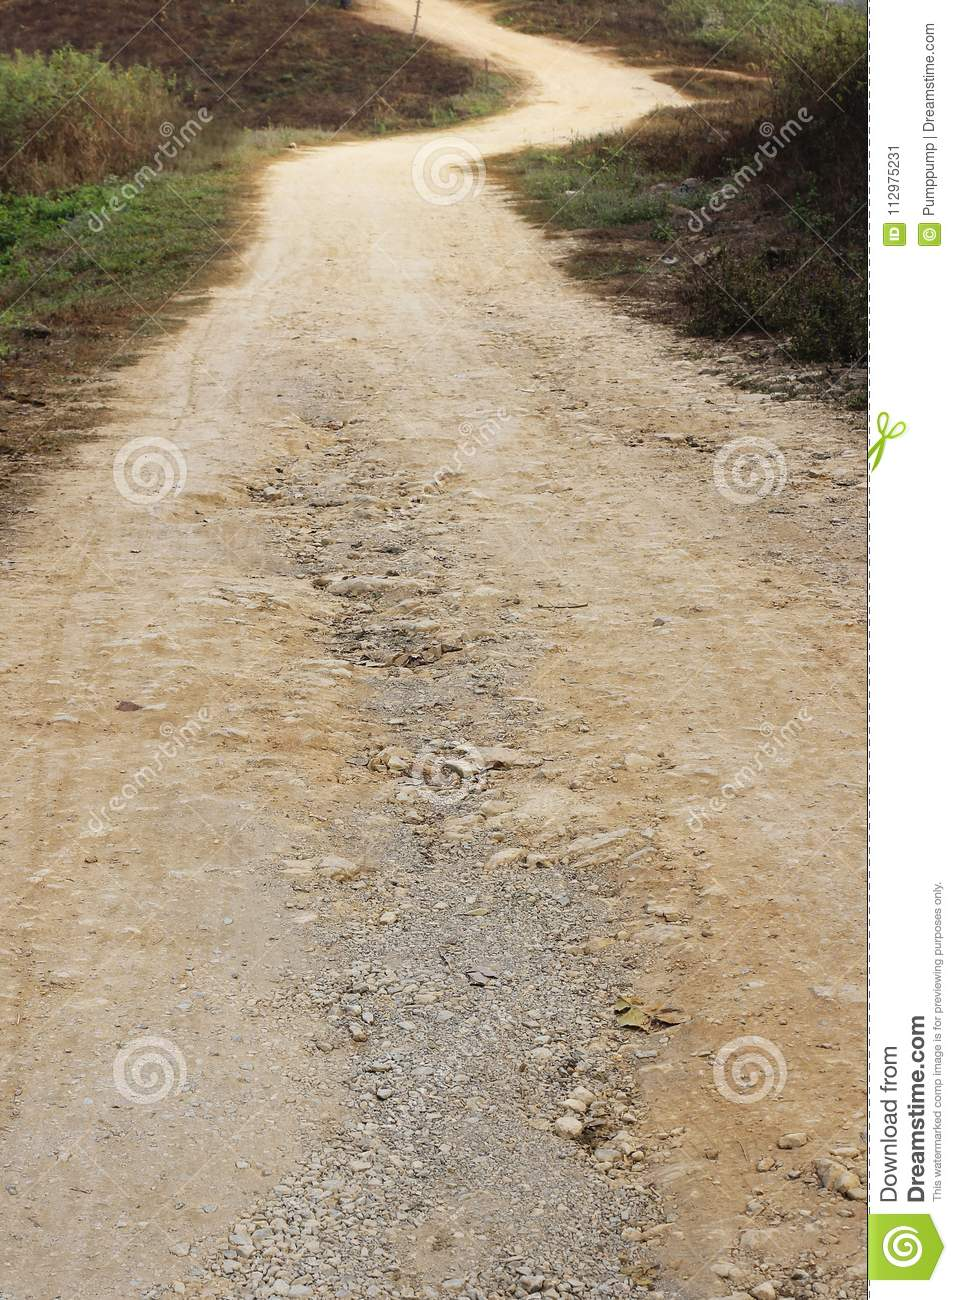 Dirt road through grassland